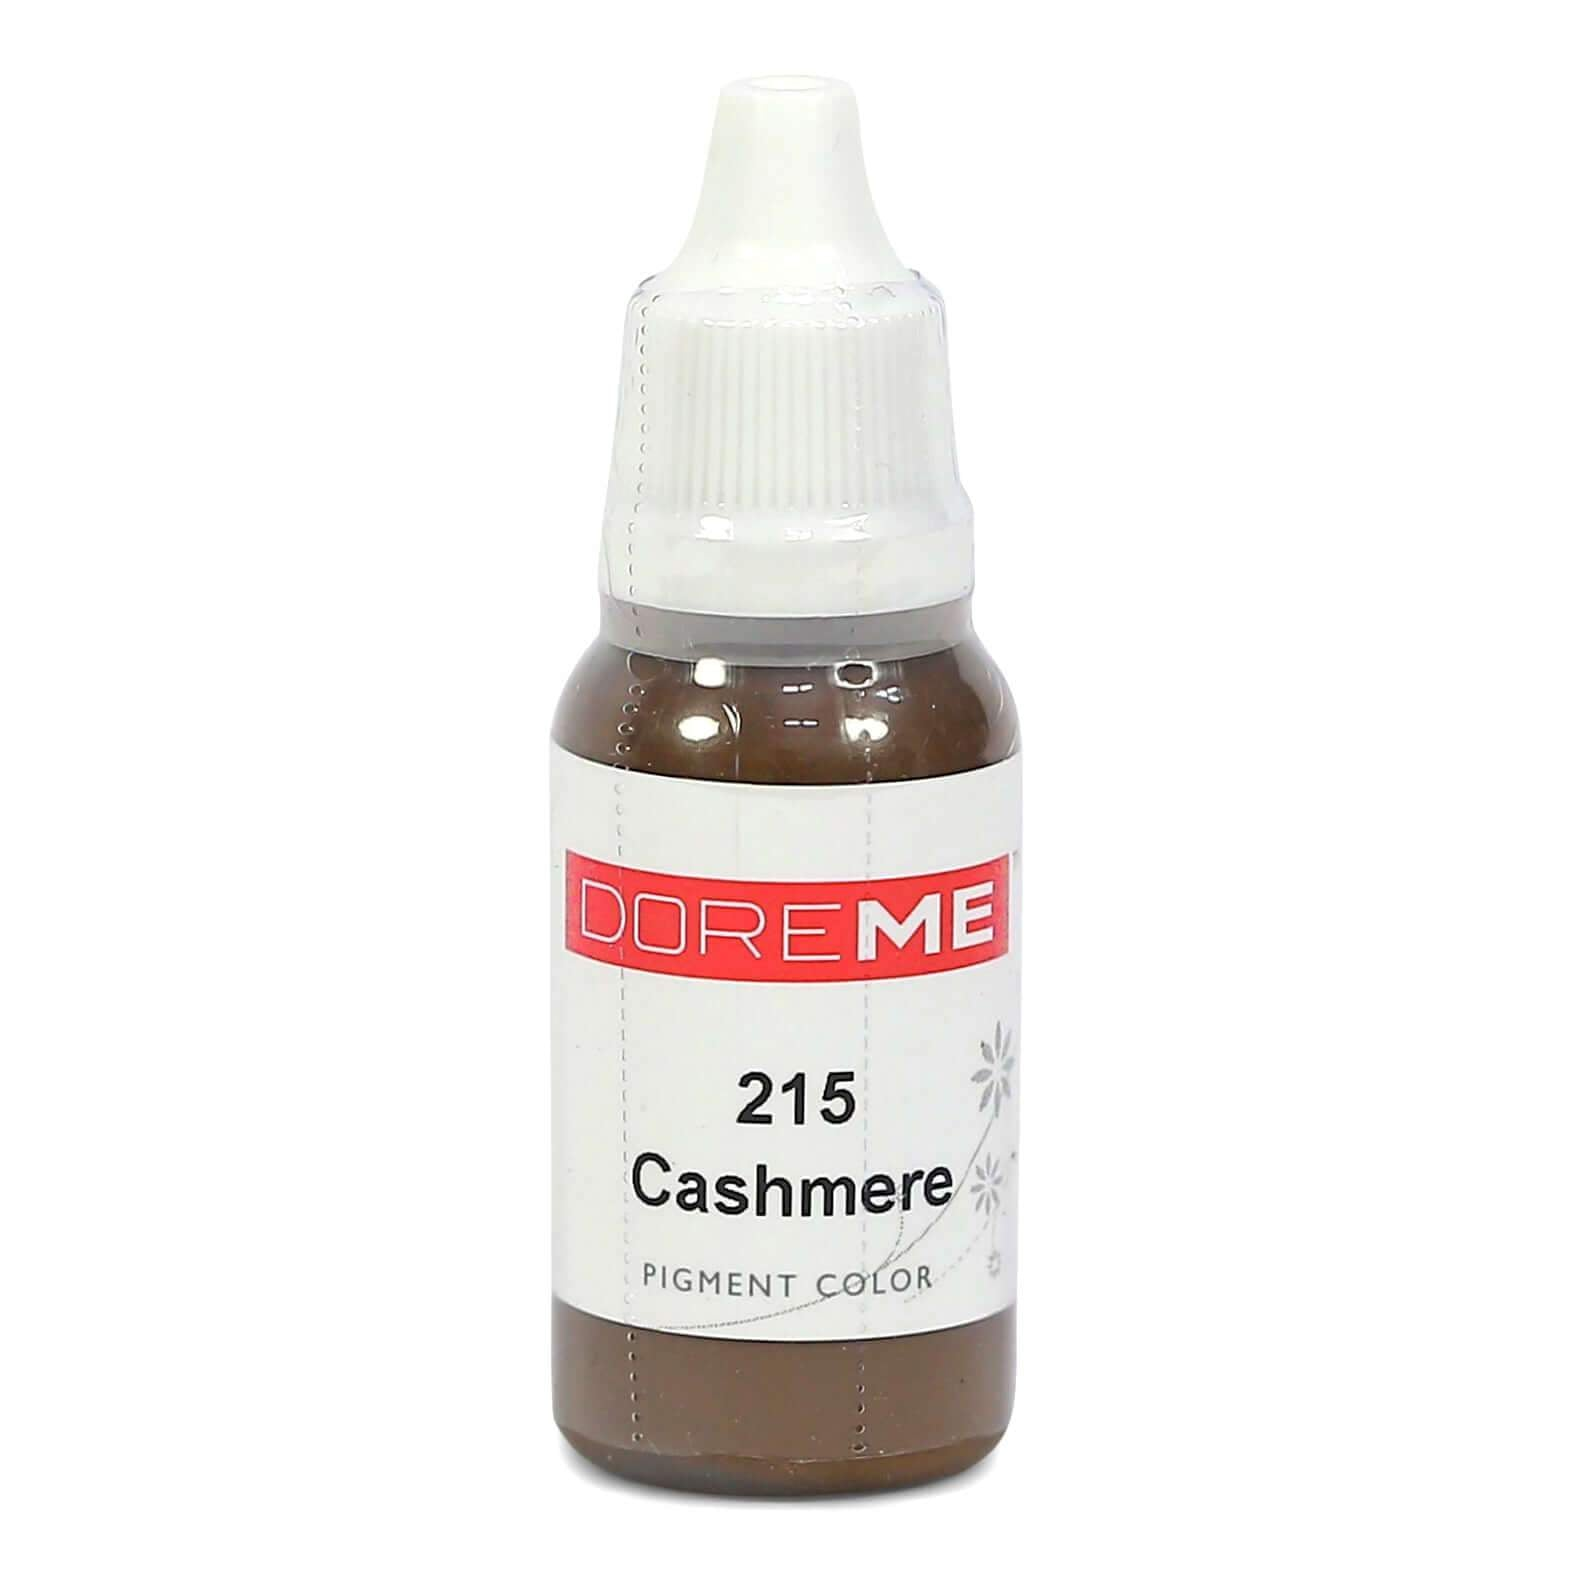 Permanent Makeup pigments Doreme Micropigmentation Eyebrow, Eyeliner, Lip Colours 215 Cashmere (c) - Beautiful Ink UK trade and wholesale supplier